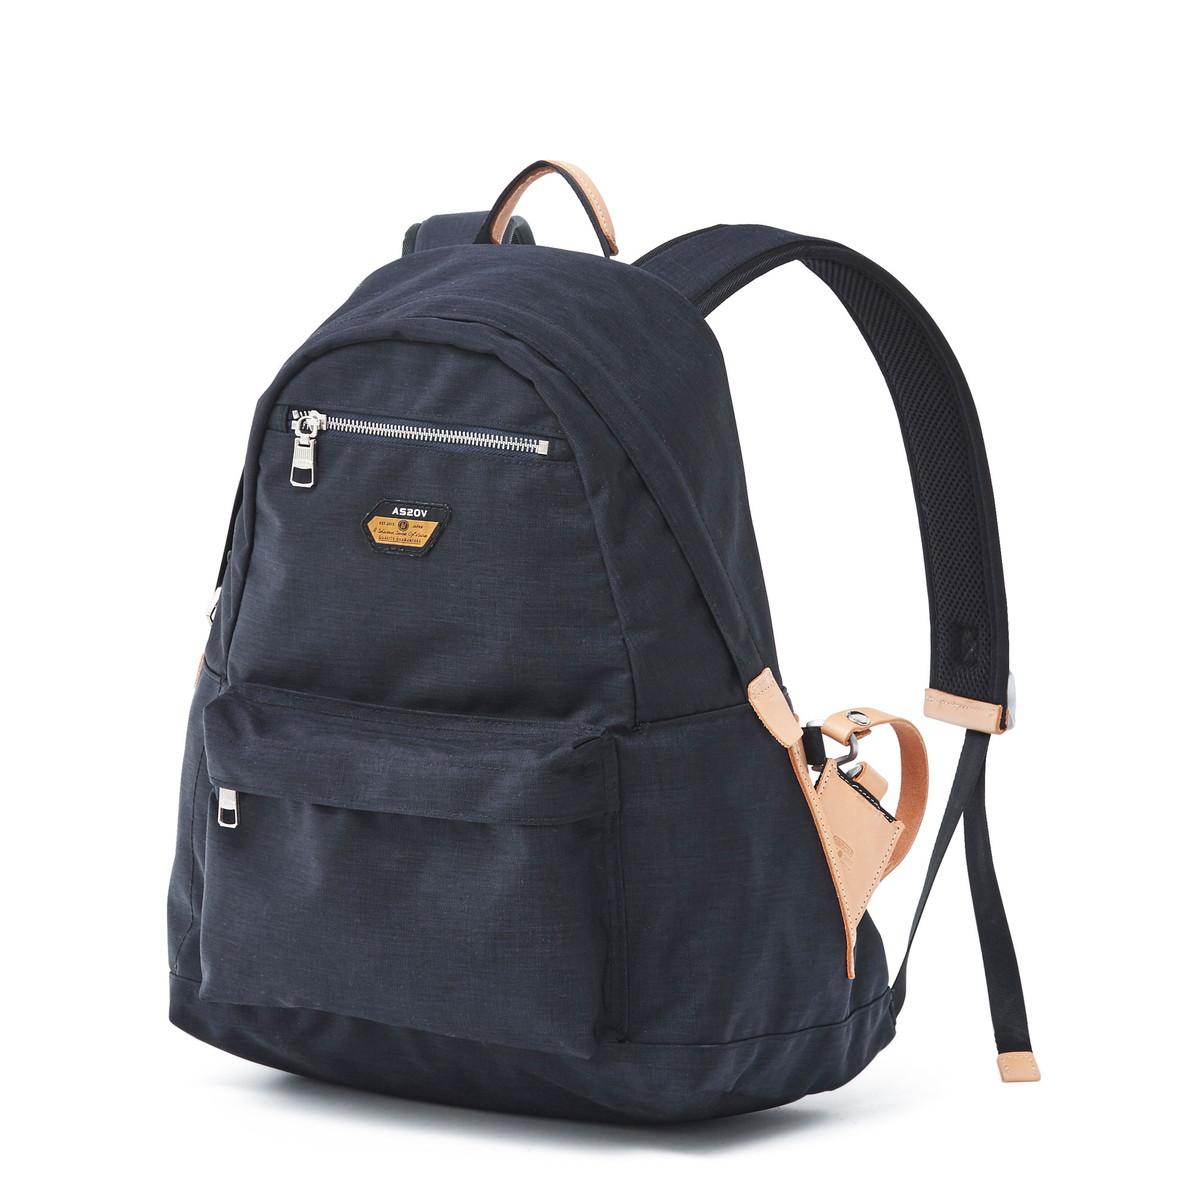 AS2OV (アッソブ)  CORDURA SPAN 600D DAY PACK / バックパック 061700